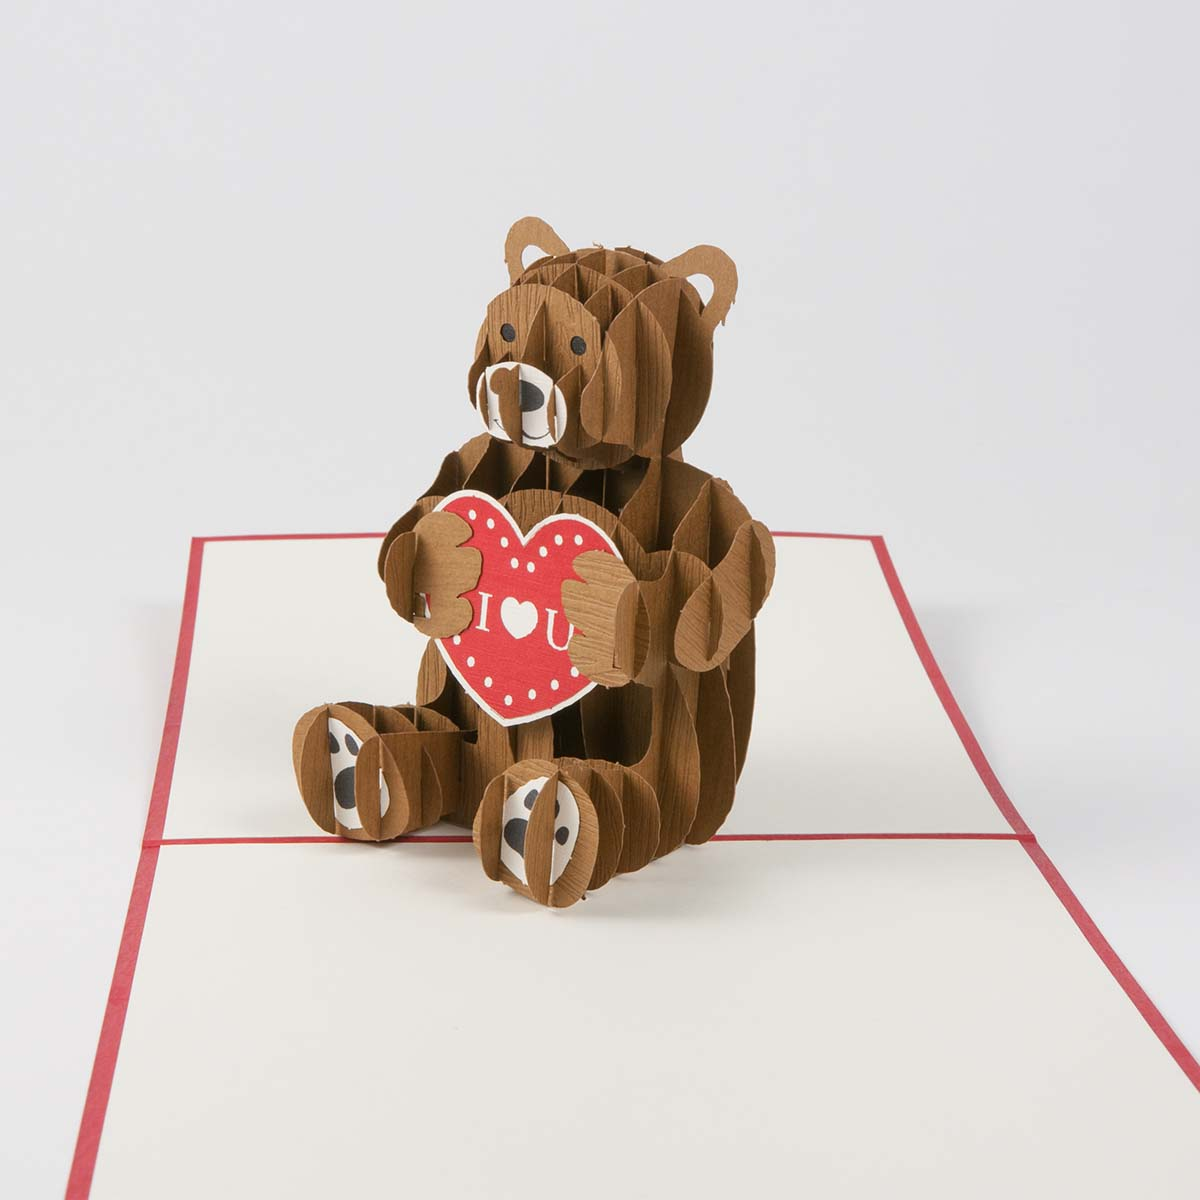 I Love You Teddybär Pop Up Karte | 3D Pop Up Karten › Pop Up Karten ...